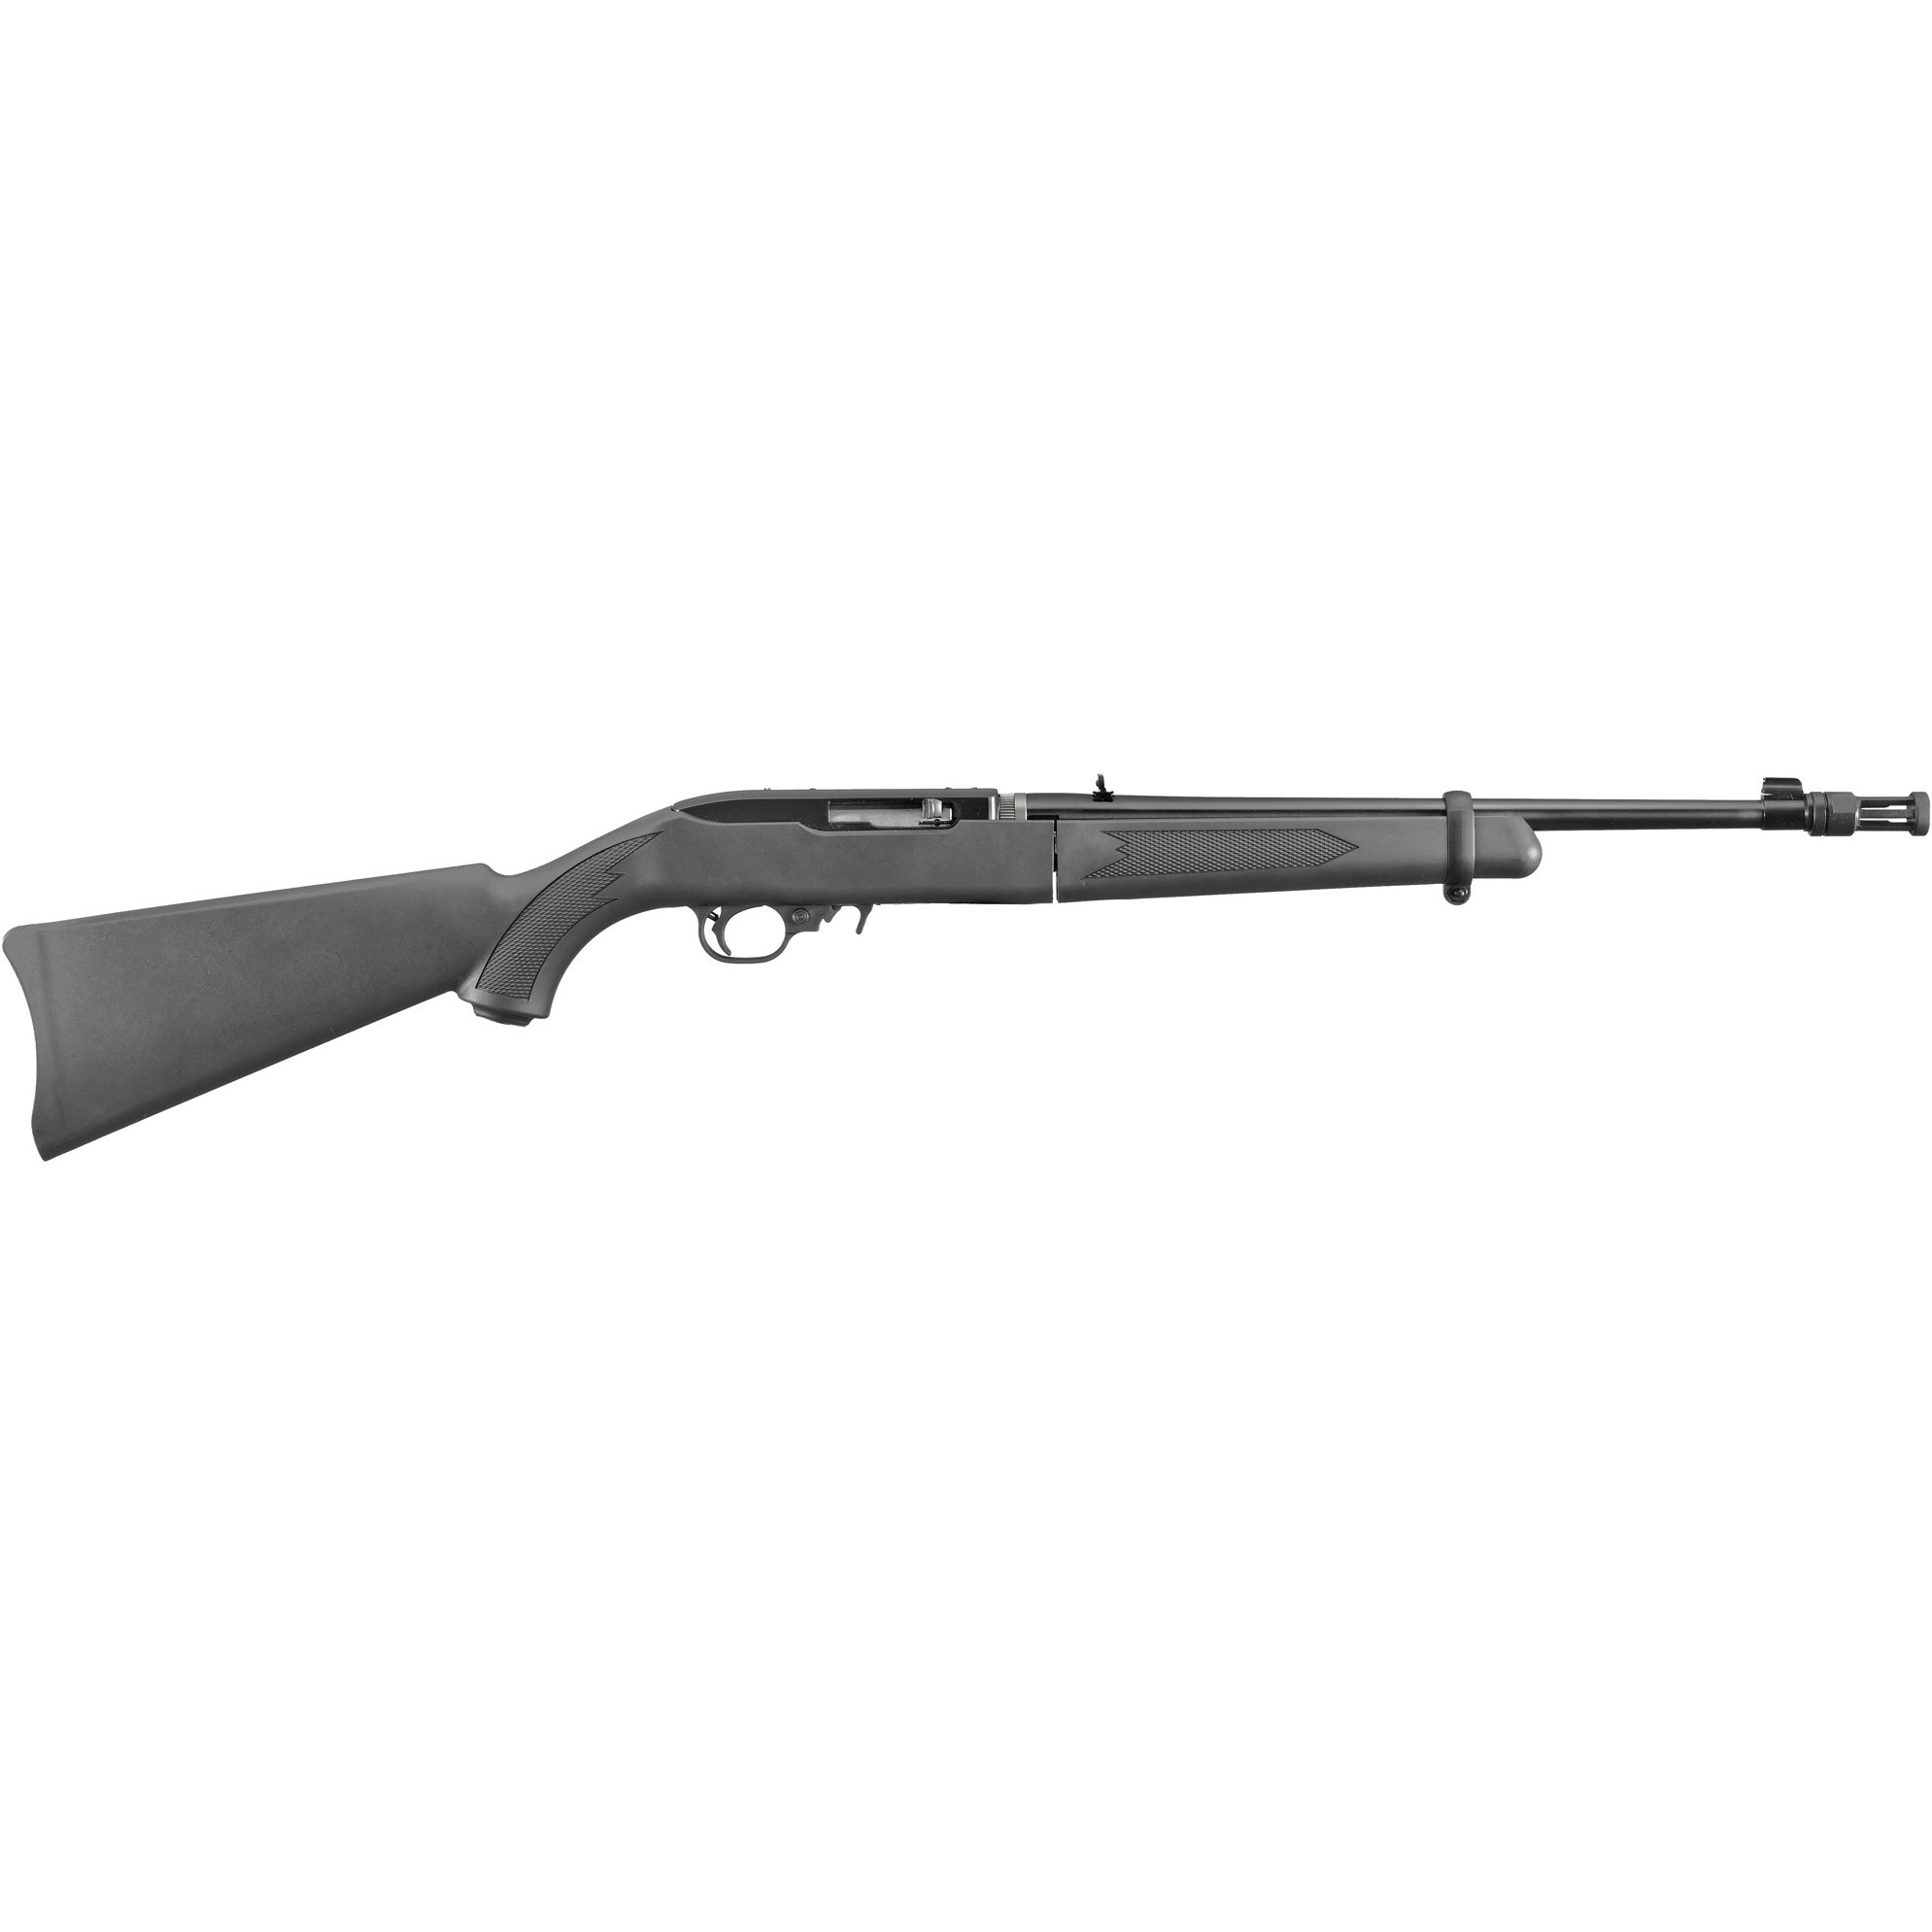 Ruger 10/22 Takedown 22 Long Rifle